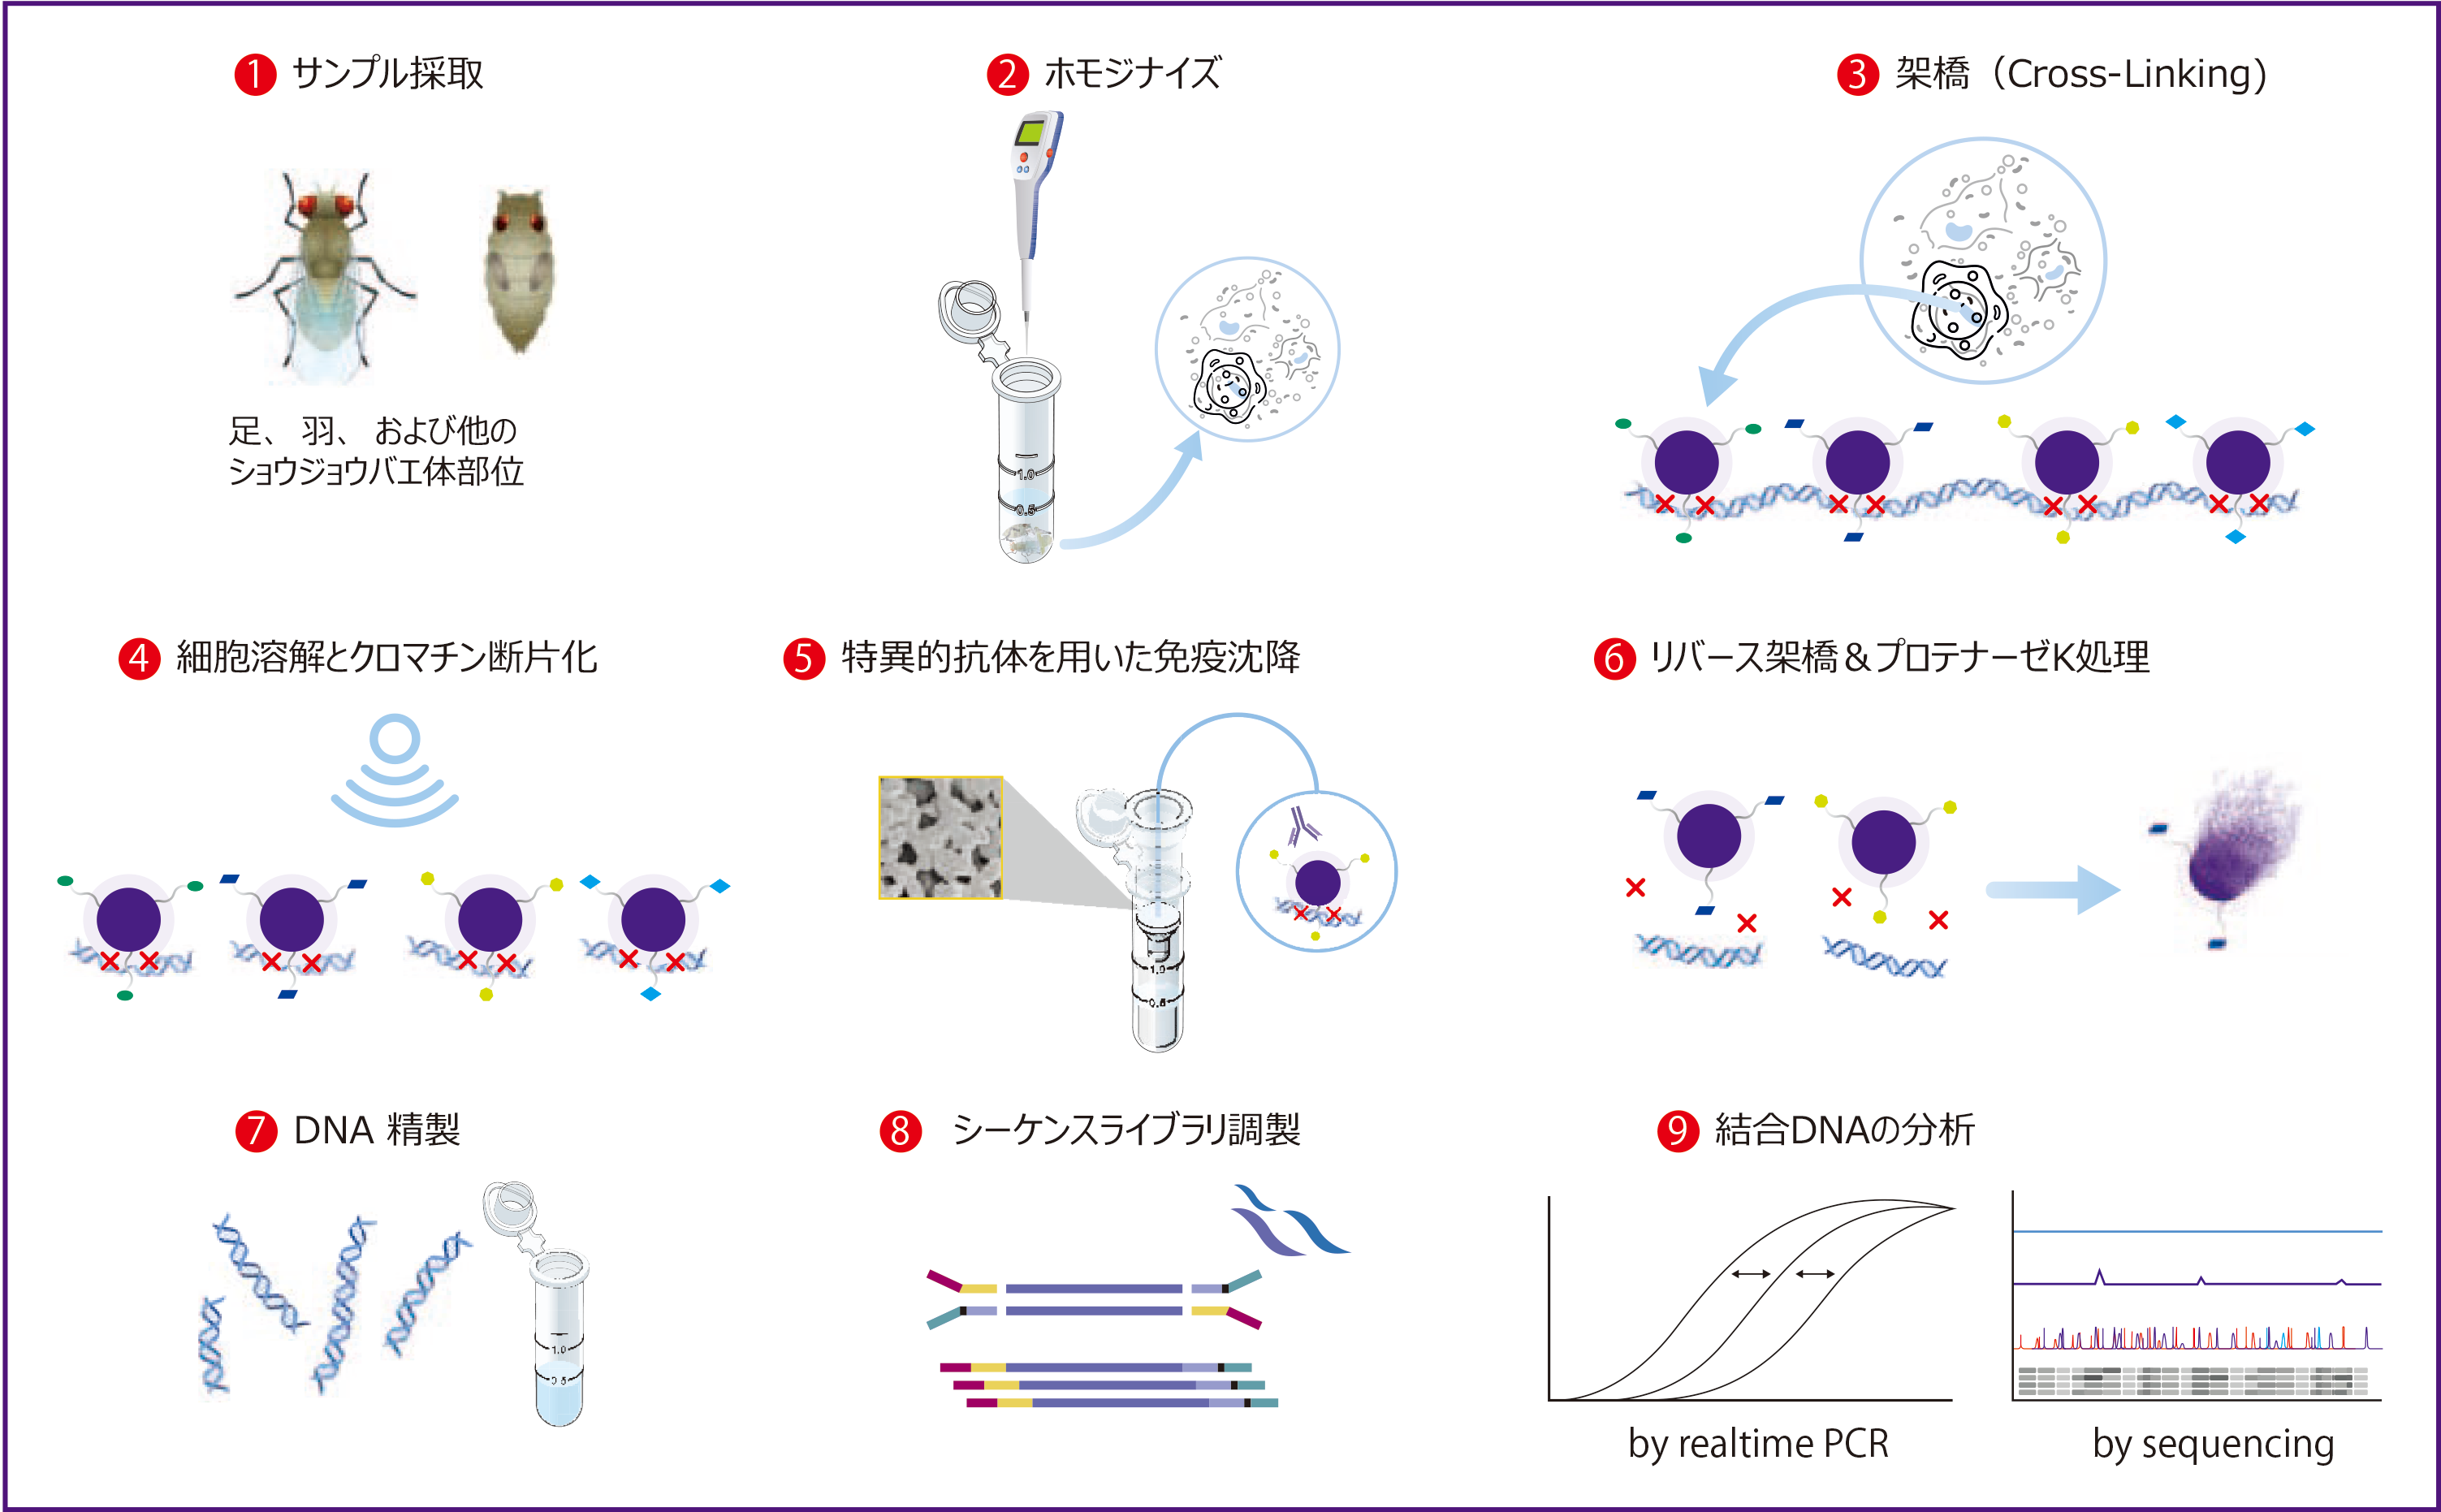 Chromatrap® <em>Drosophila</em> ChiP-seqプロセスの概略